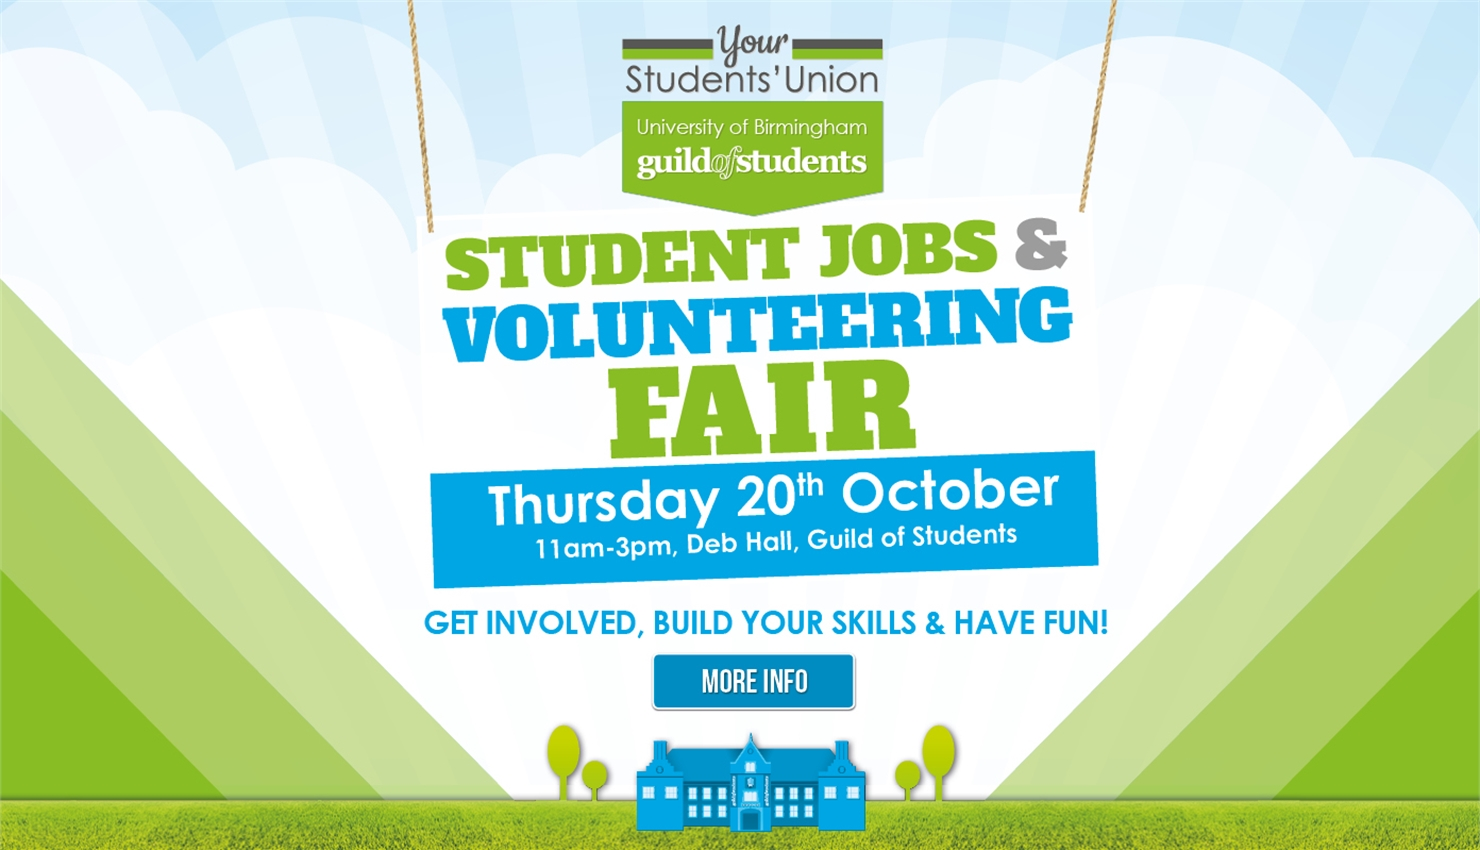 student jobs and volunteering fair - thursday 20th October 2016 - 11am - 3pm Deb Hall - Guild of Stu